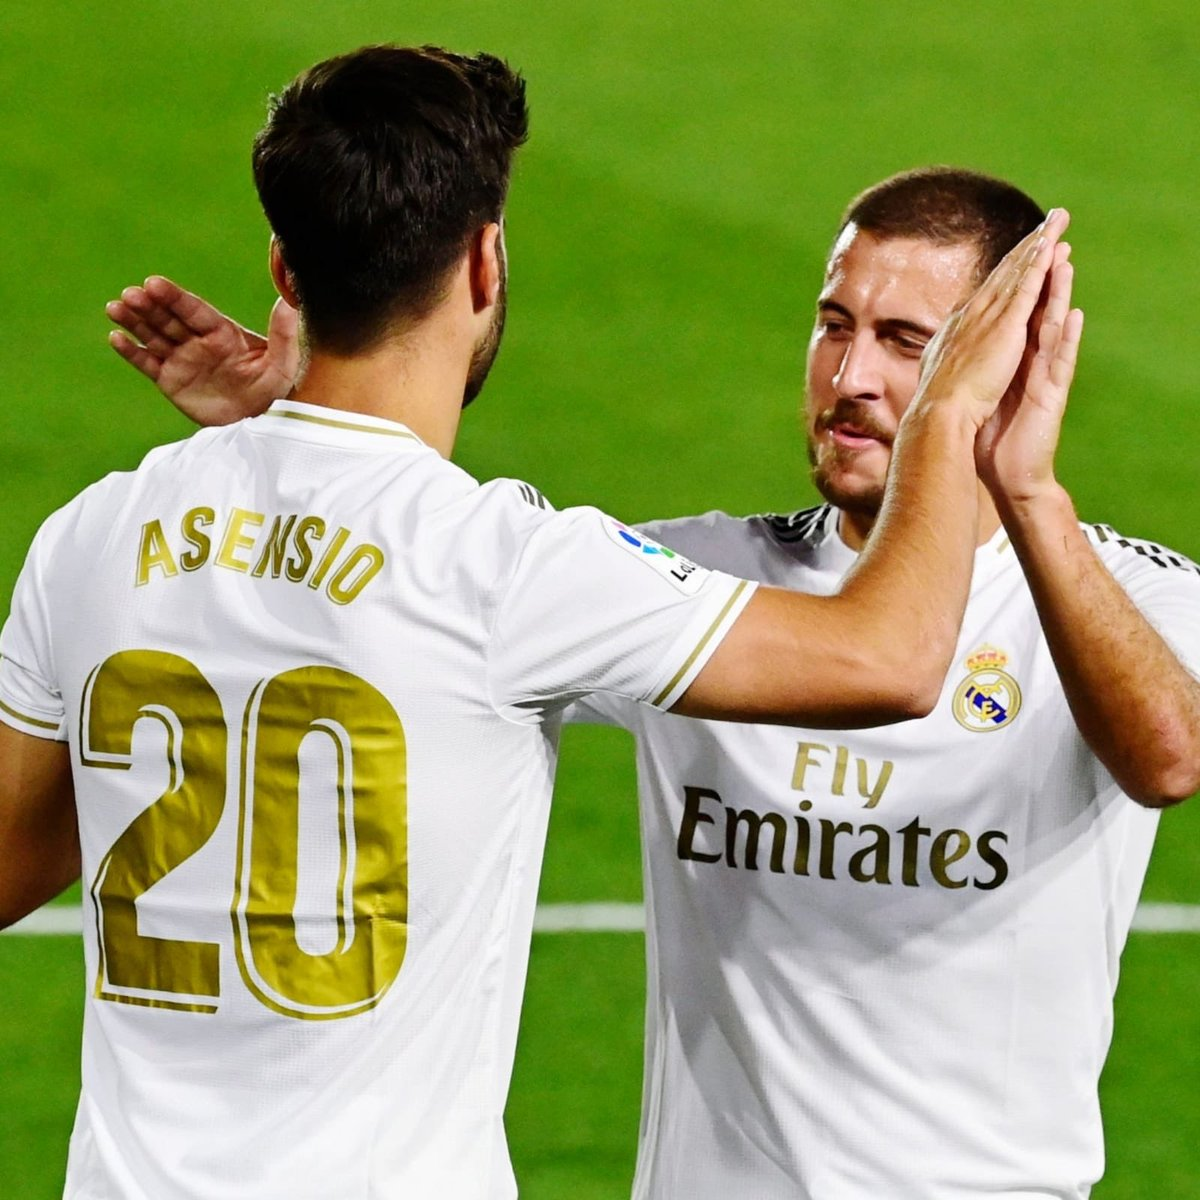 Nice first touch @marcoasensio10 and wow @Benzema 🚀🚀😳😳#halamadrid